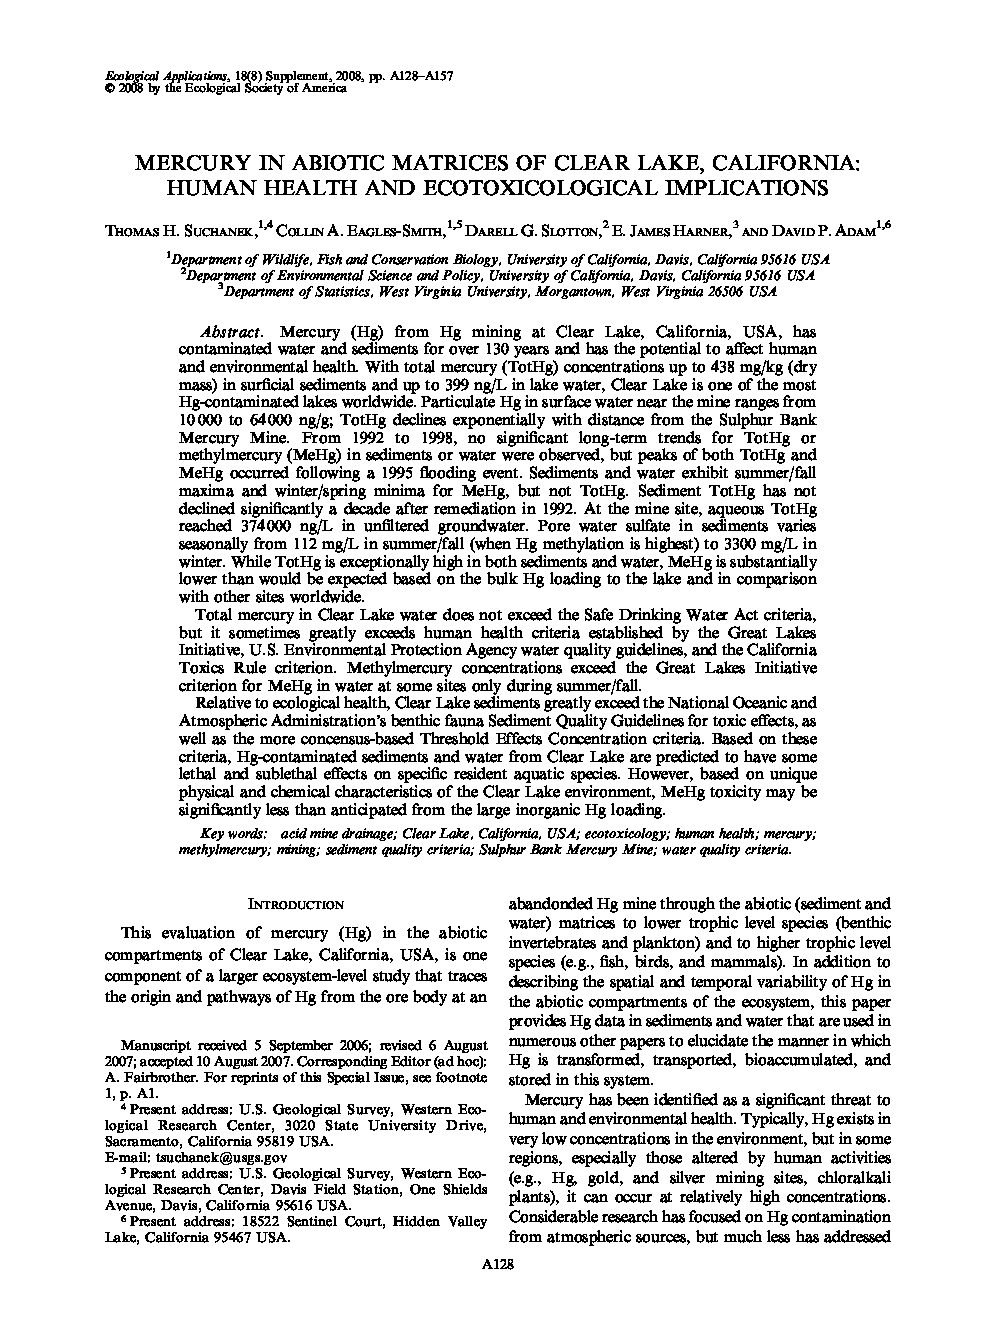 Mercury in Abiotic Matrices of Clear Lake, California: Human Health and Ecotoxicological Implications